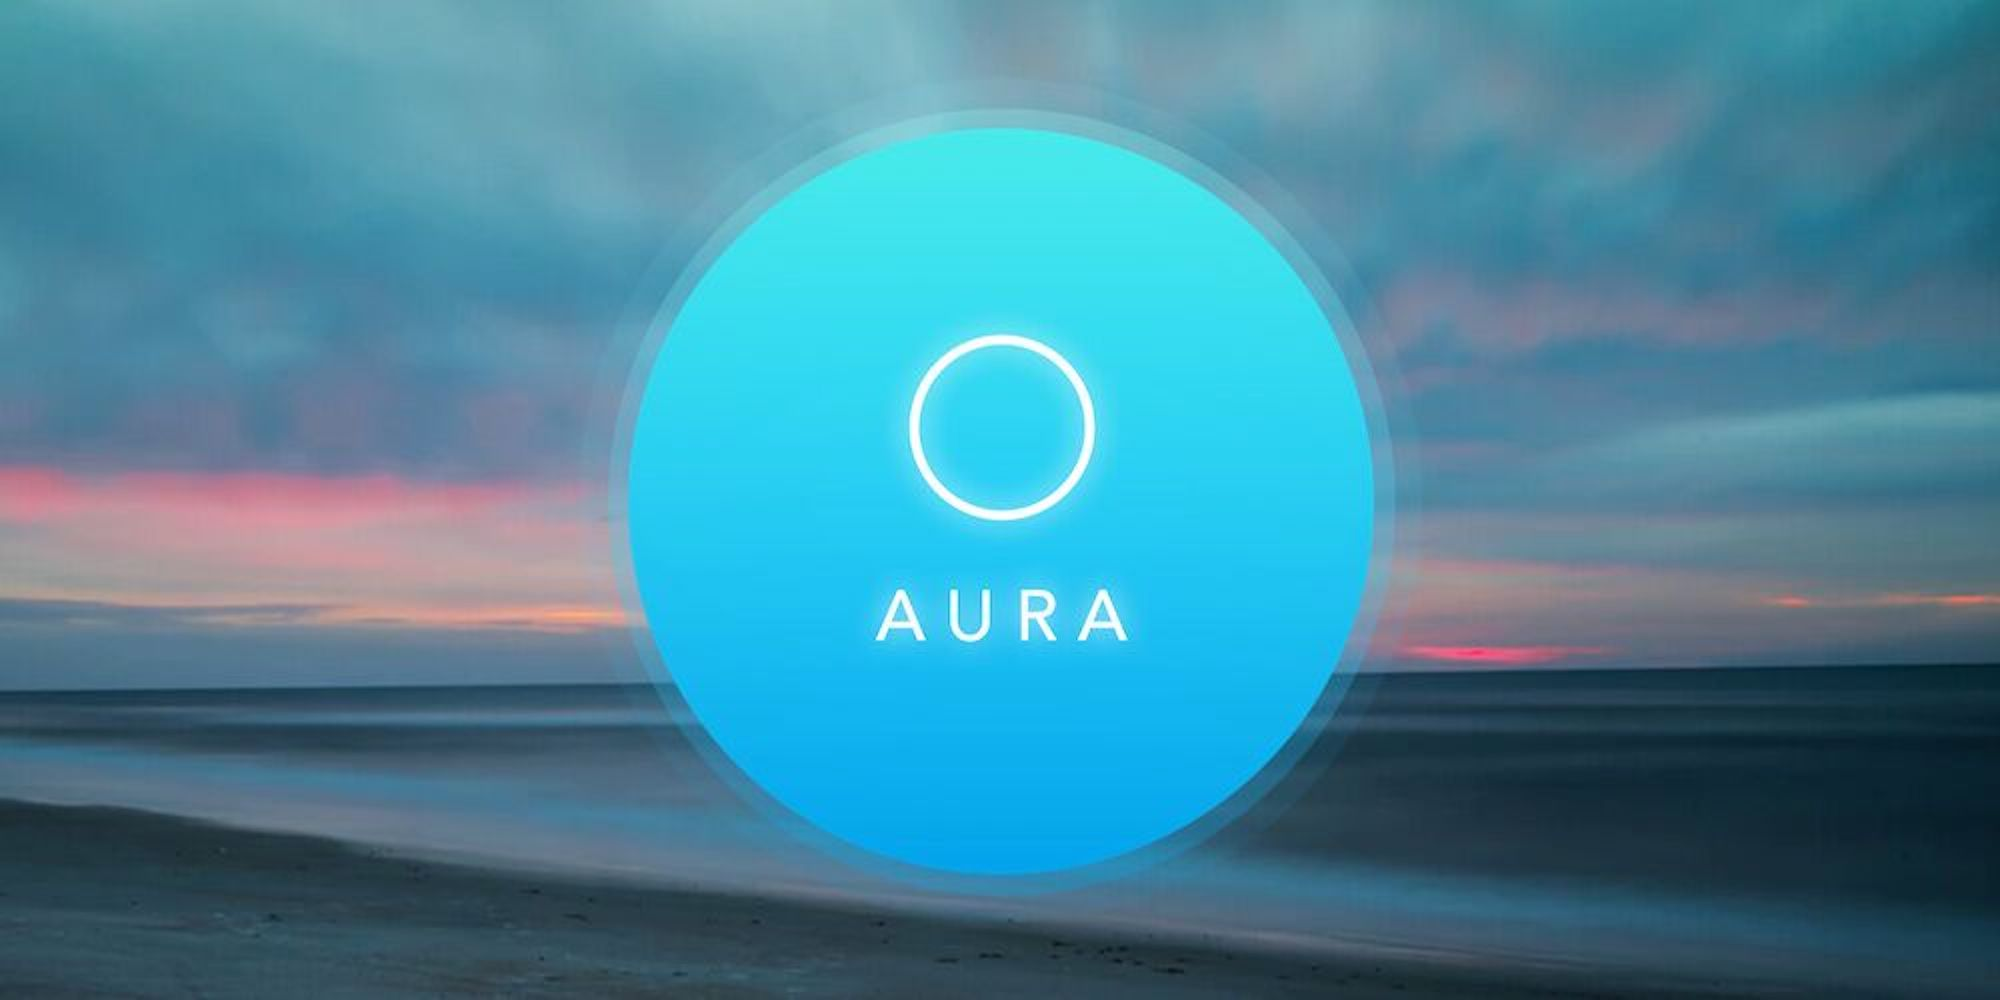 Enjoy guided meditation with the highly-rated app Aura, starting at $34 (Orig. $95) - 9to5Toys